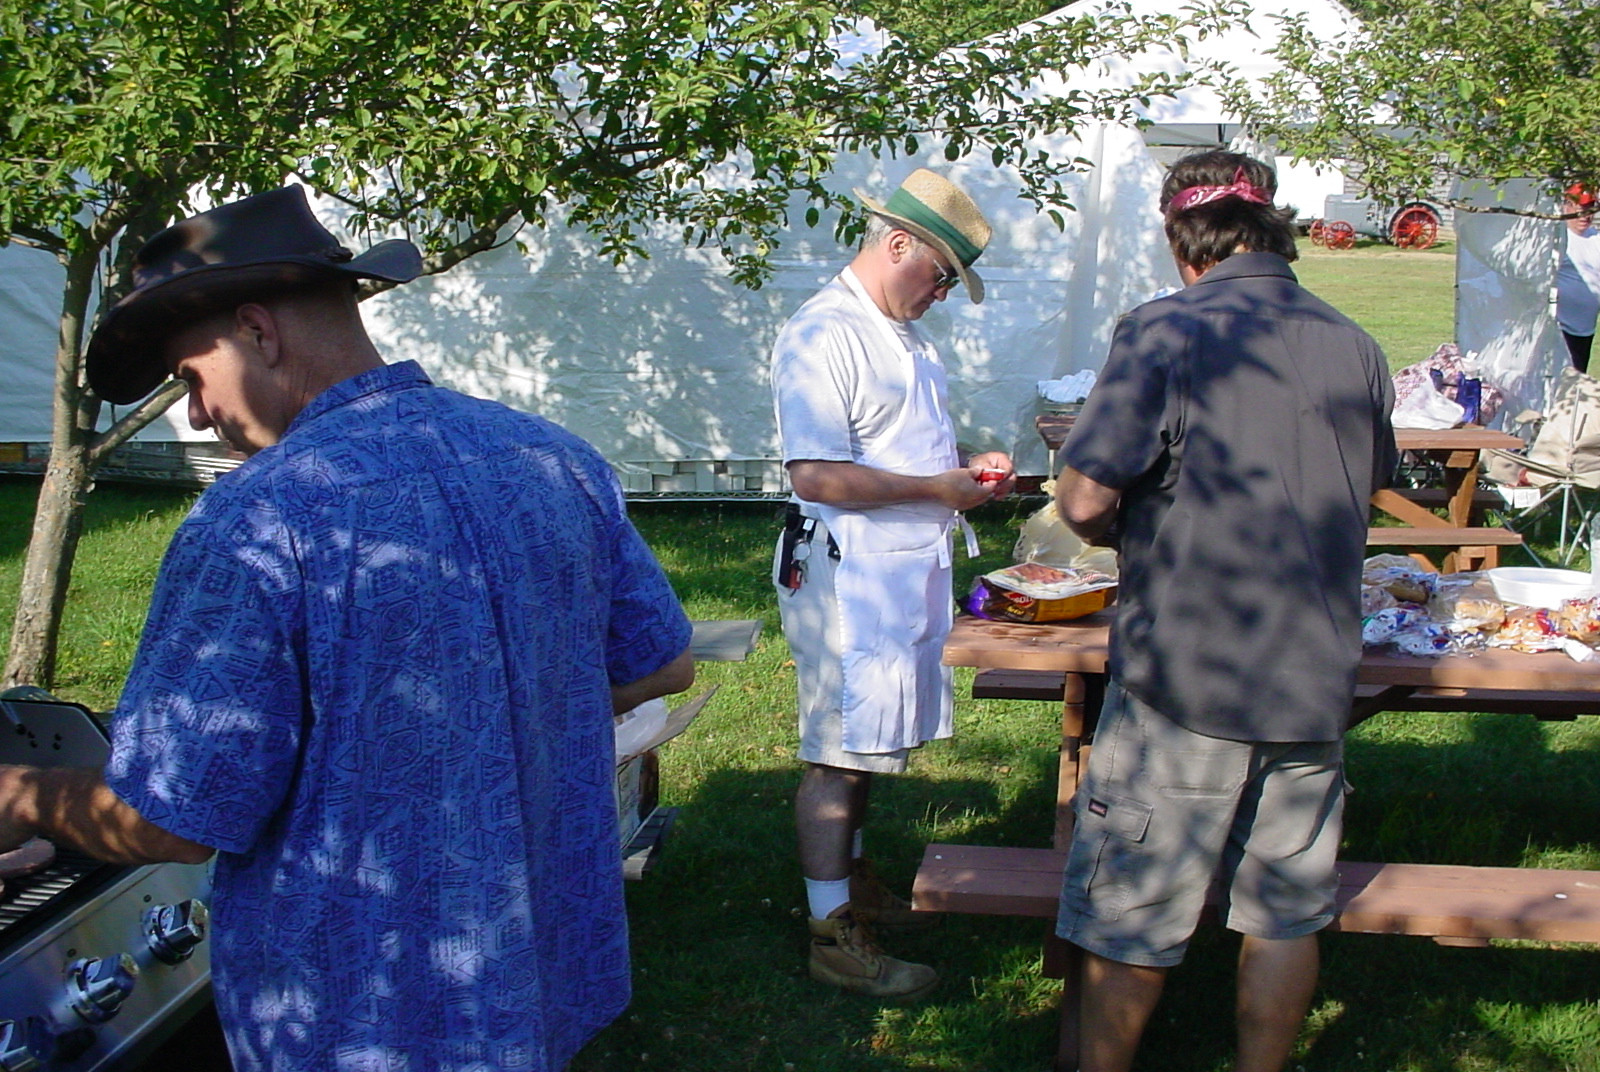 Barbecuing at the picnic